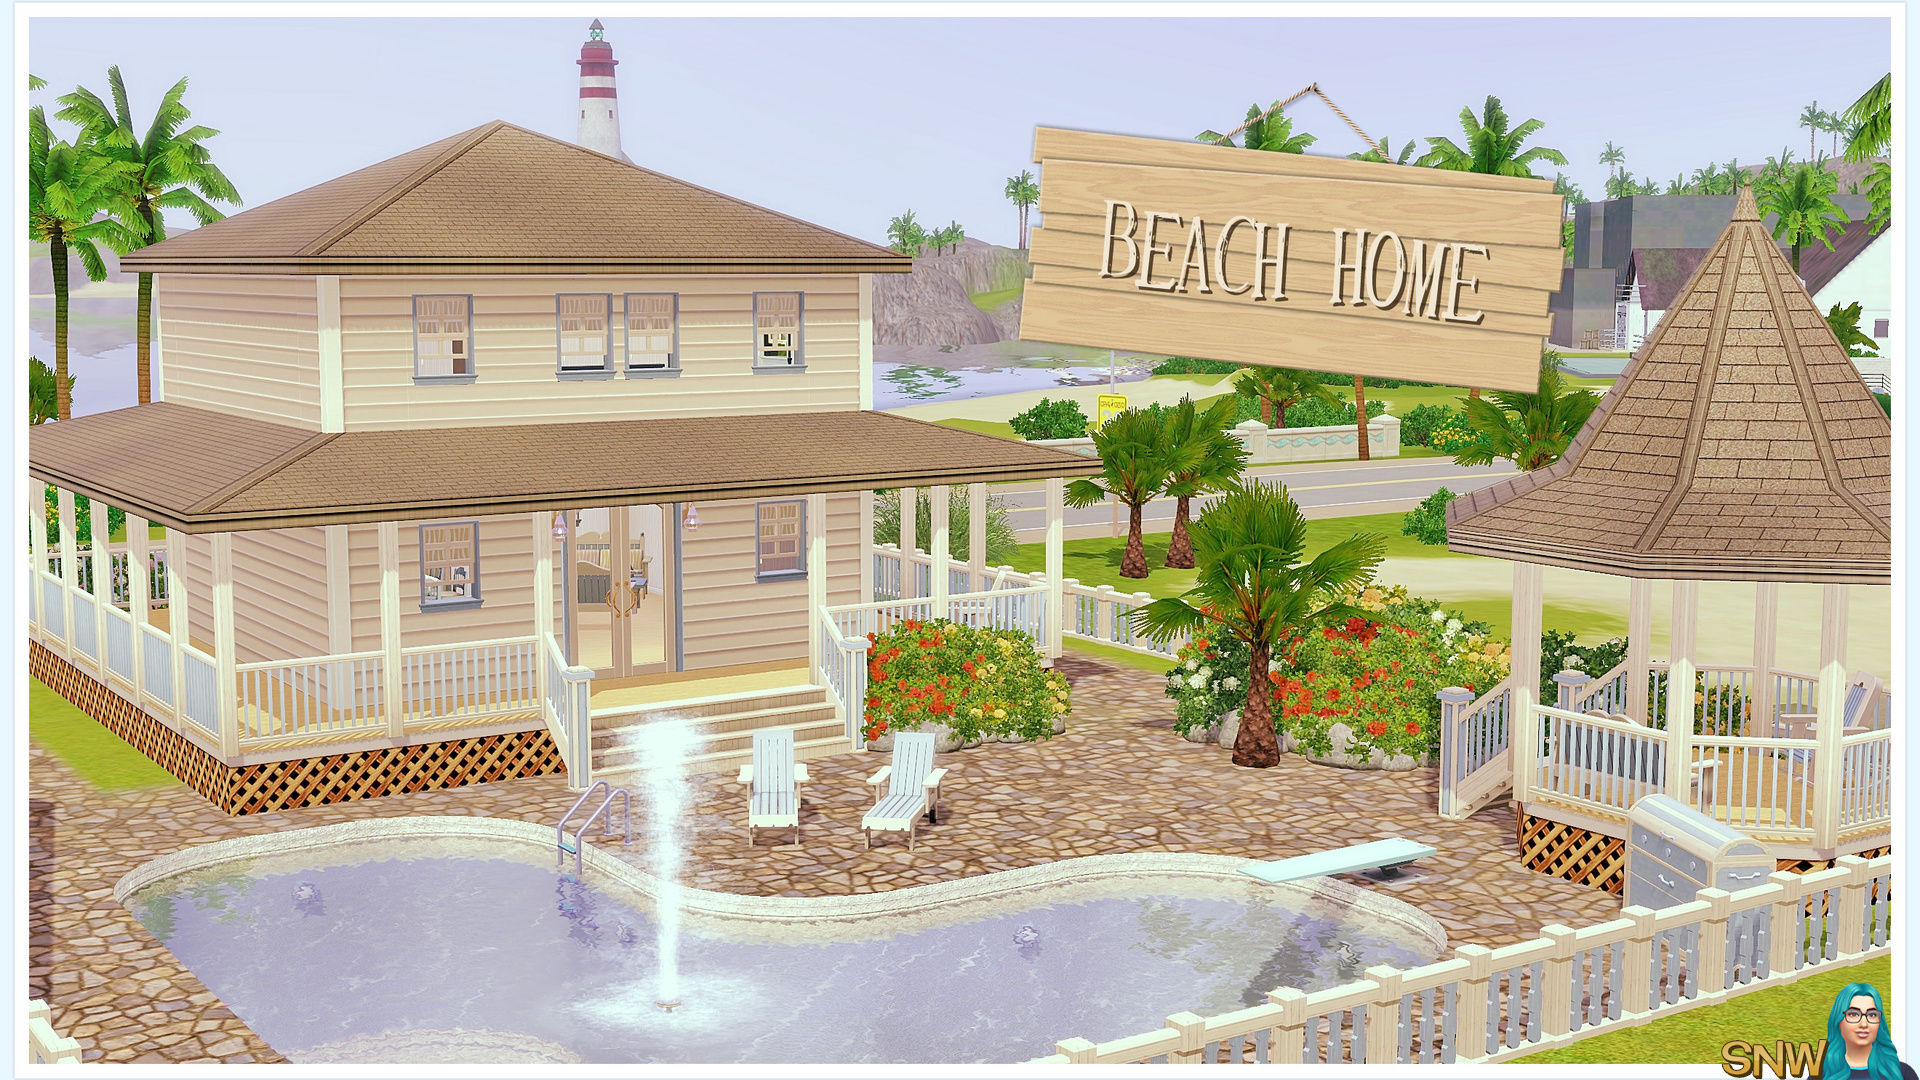 Beach house snw for Beach house plans sims 3